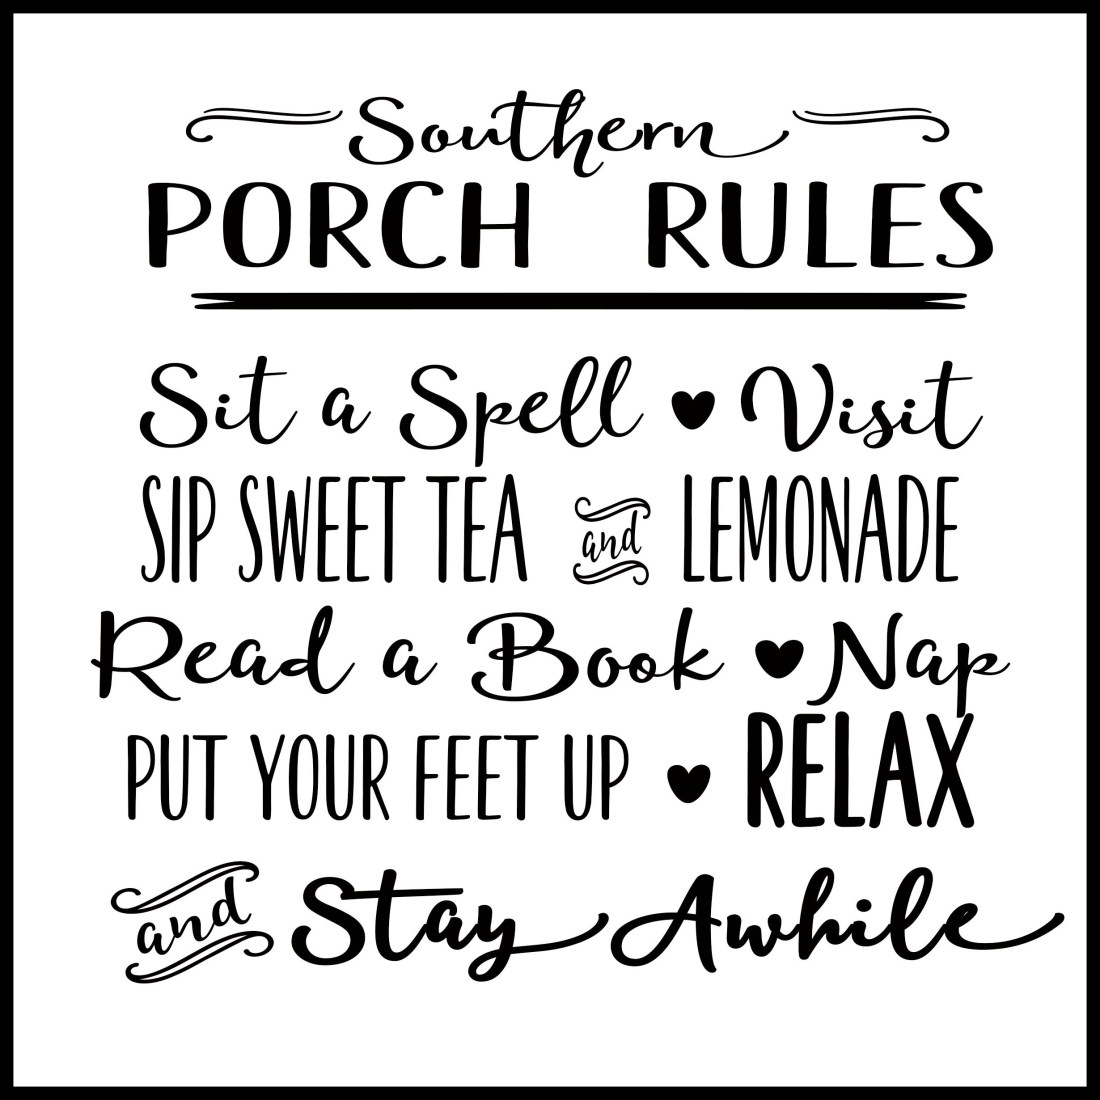 Southern Porch Rules w Border